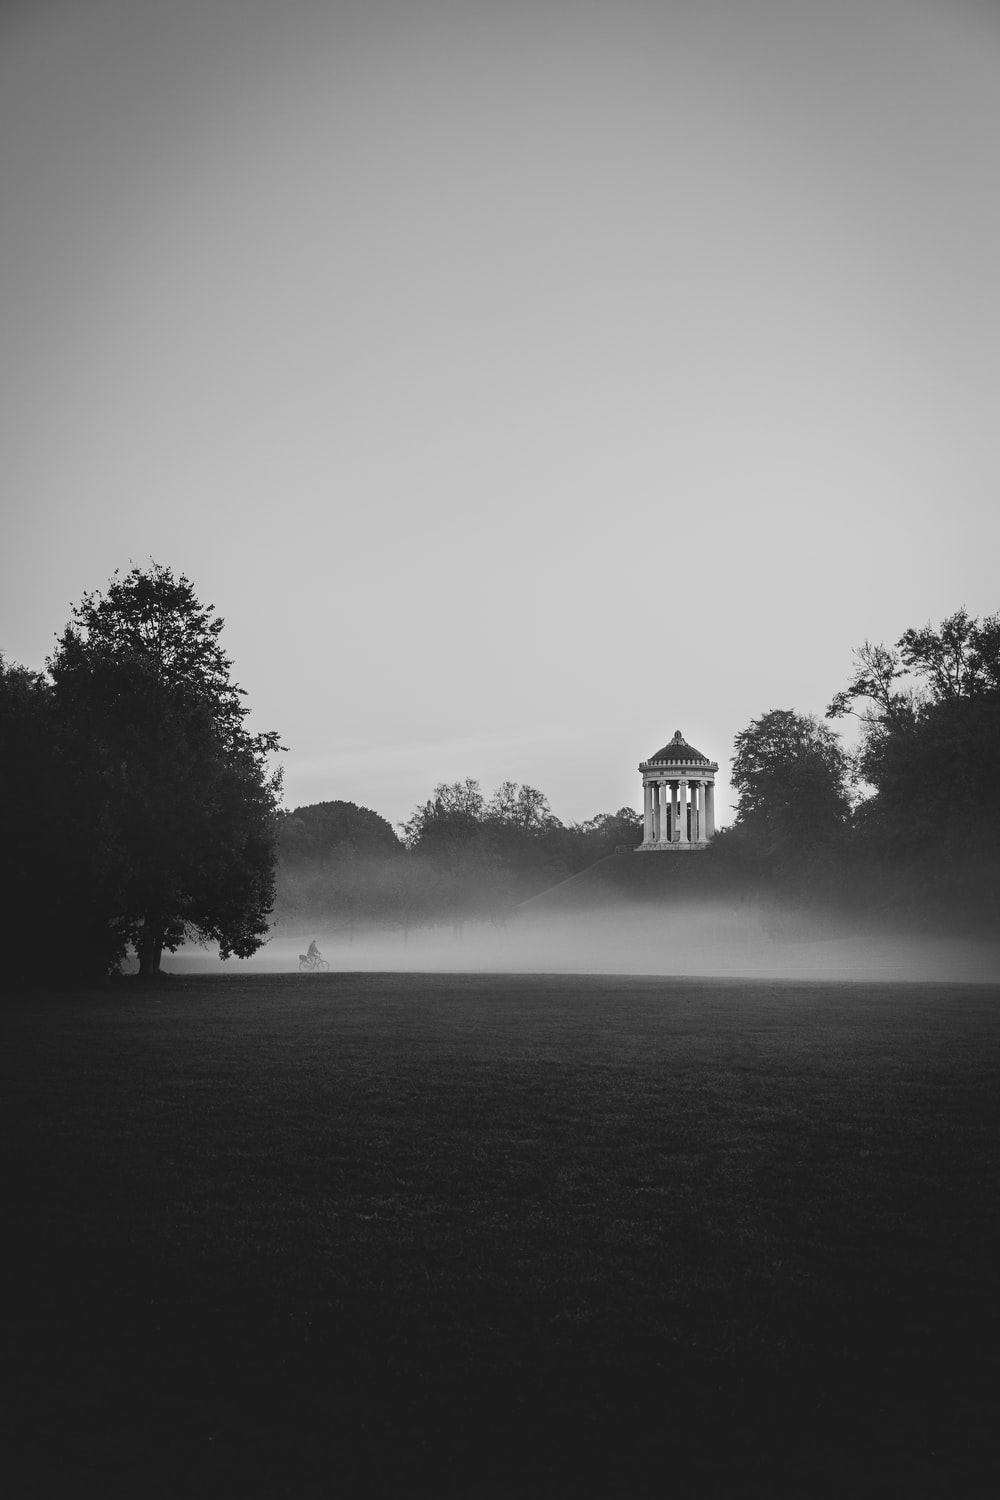 grayscale photo of building surrounded by trees